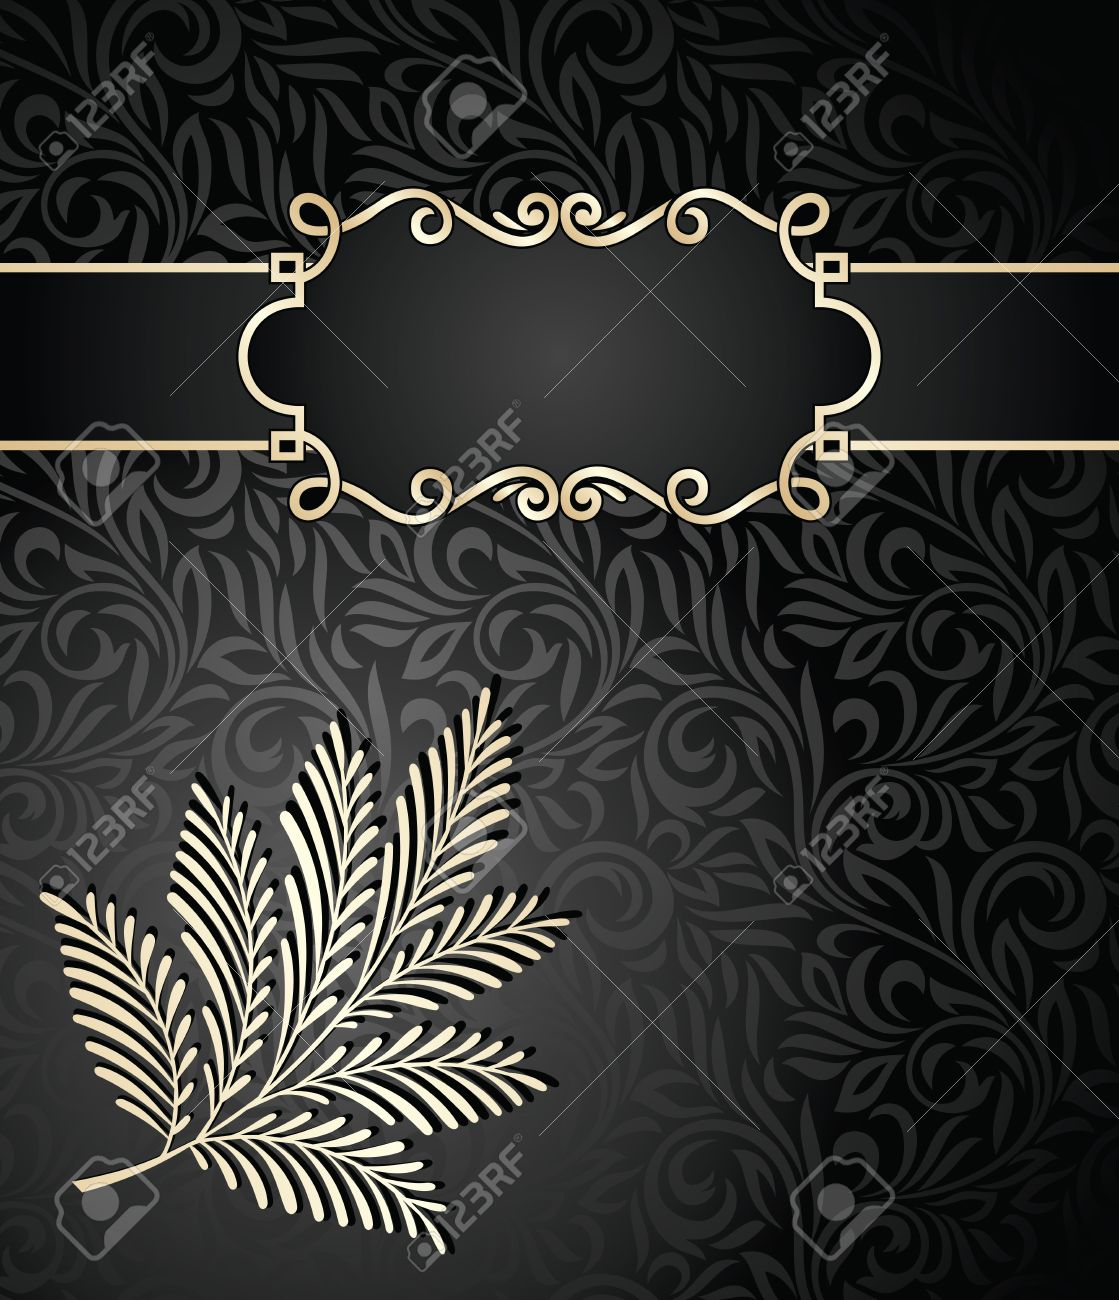 Book Cover Pictures : Download wallpaper for book cover gallery